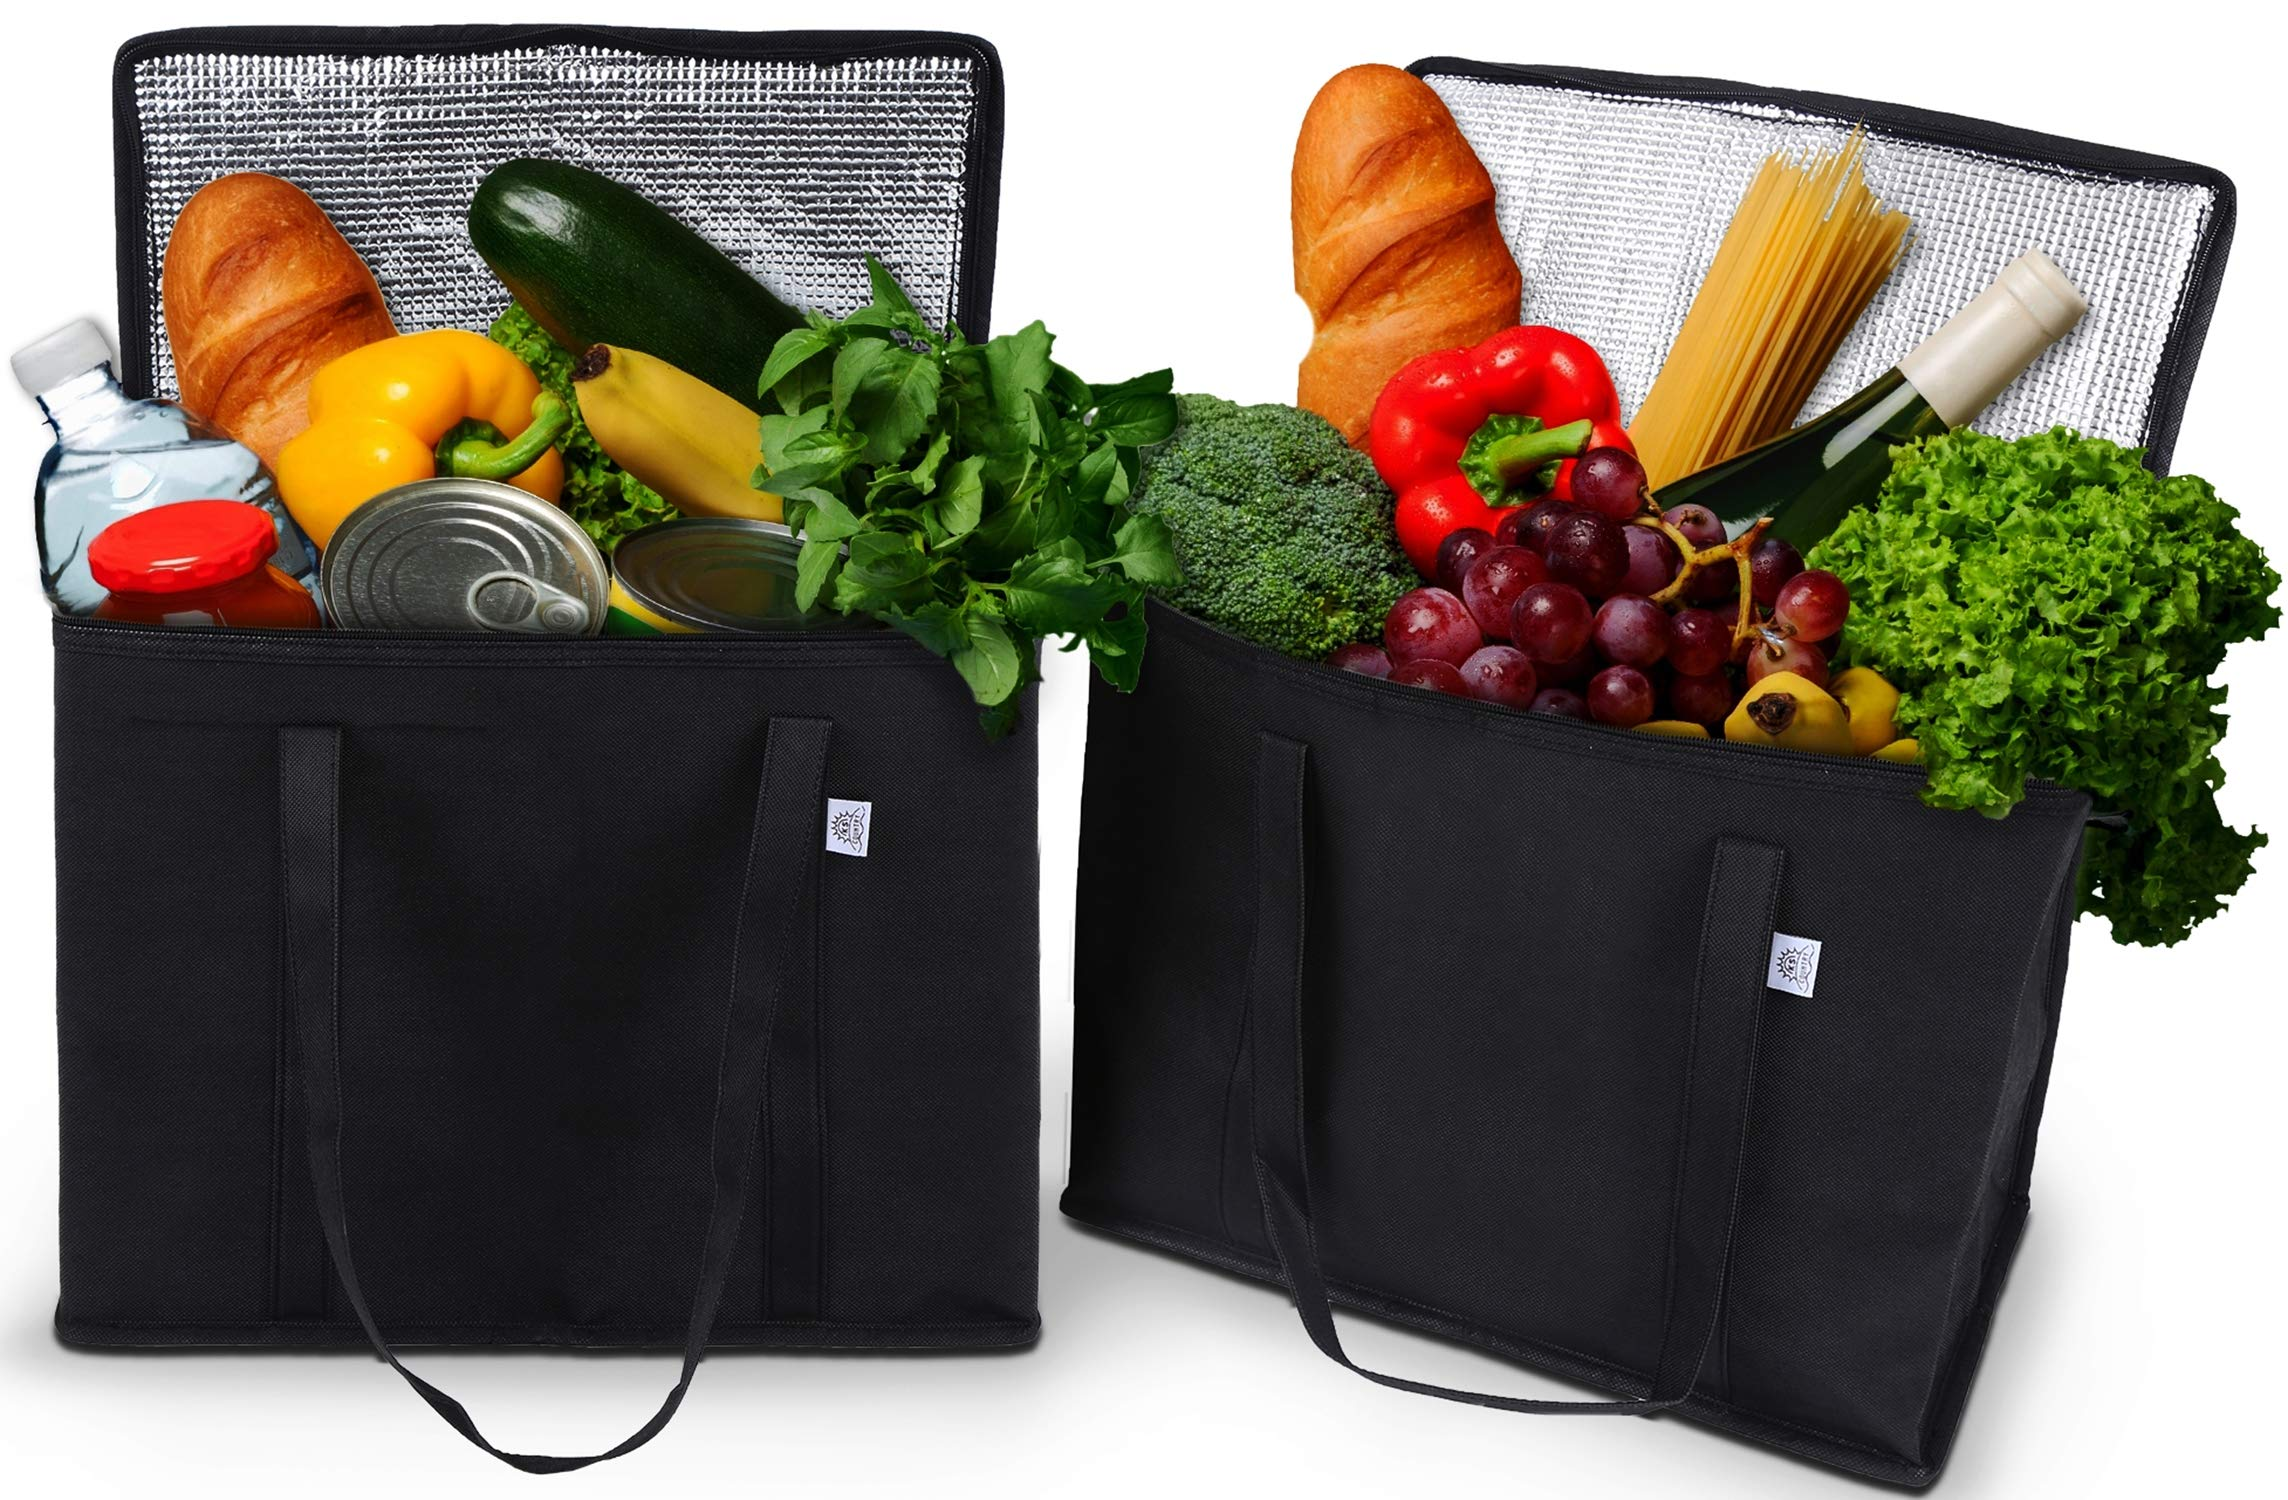 2 Pack Reusable Grocery Tote Bag by Ks Country - Collapsible and Stands Upright with Durable Zippers and Large Reinforced Handles for Extra Strength - Sturdy and Insulated to Keep Foods Cold or Hot by Ks Country (Image #1)